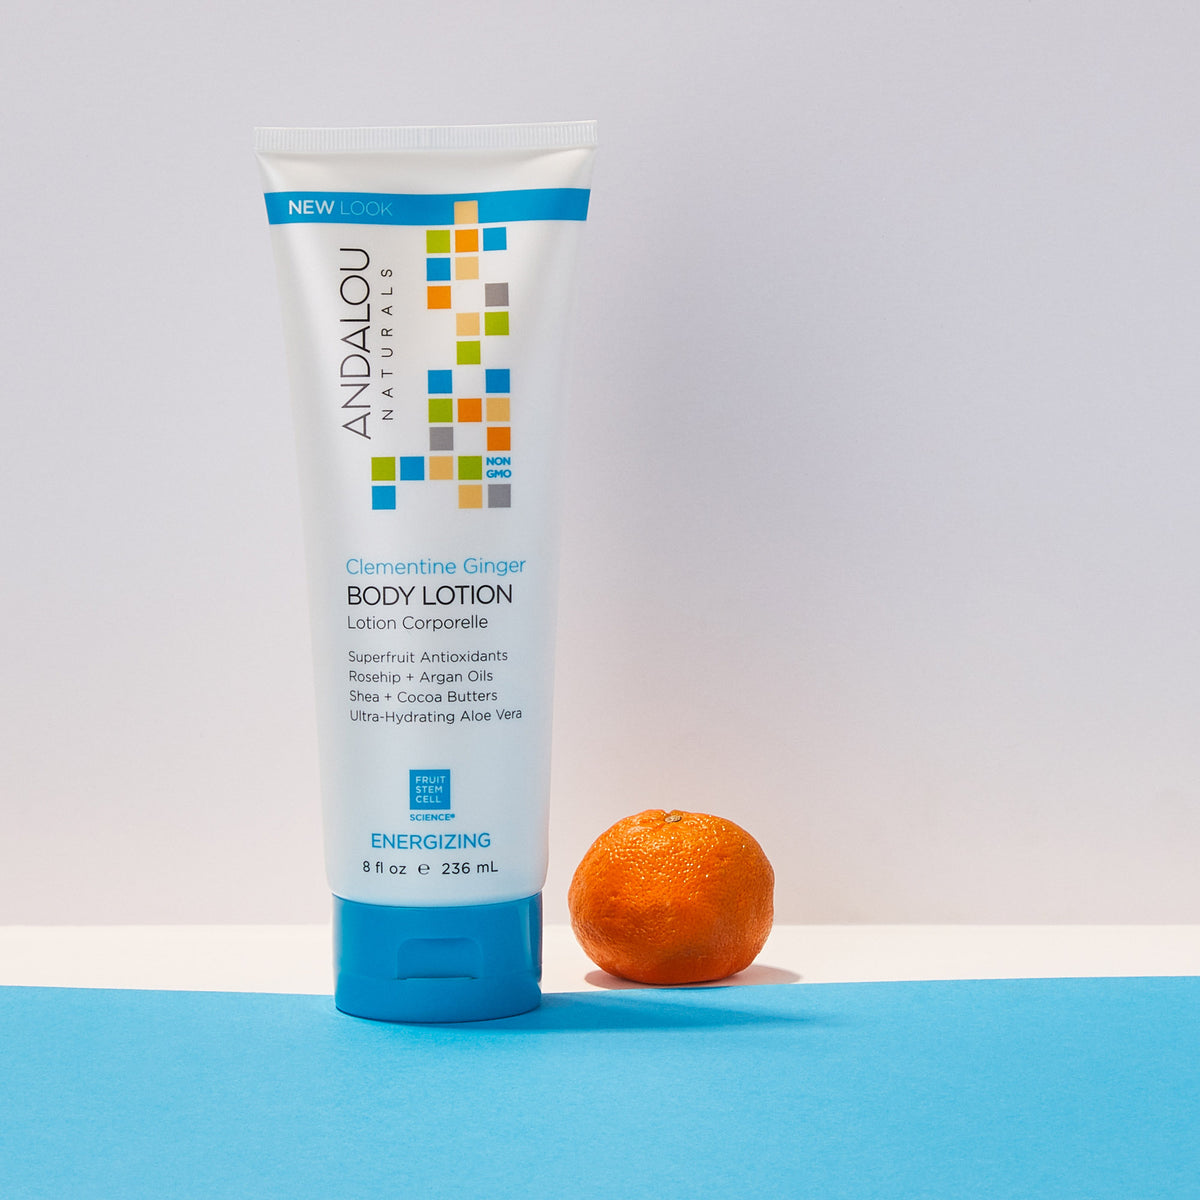 Clementine Ginger Energizing Body Lotion with clementine